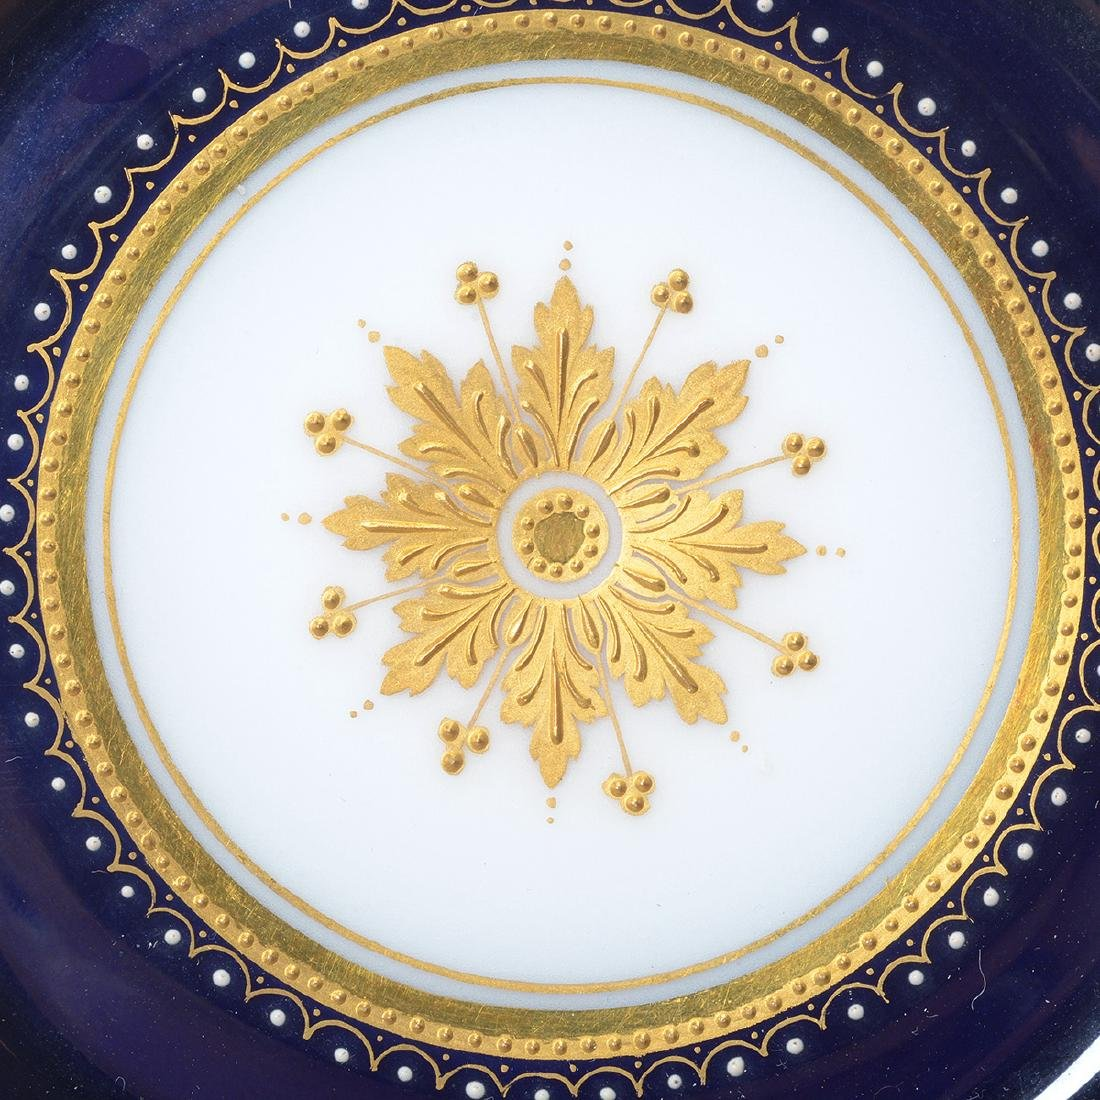 Royal Vienna Style Porcelain Plate with Cup and Saucer - 7